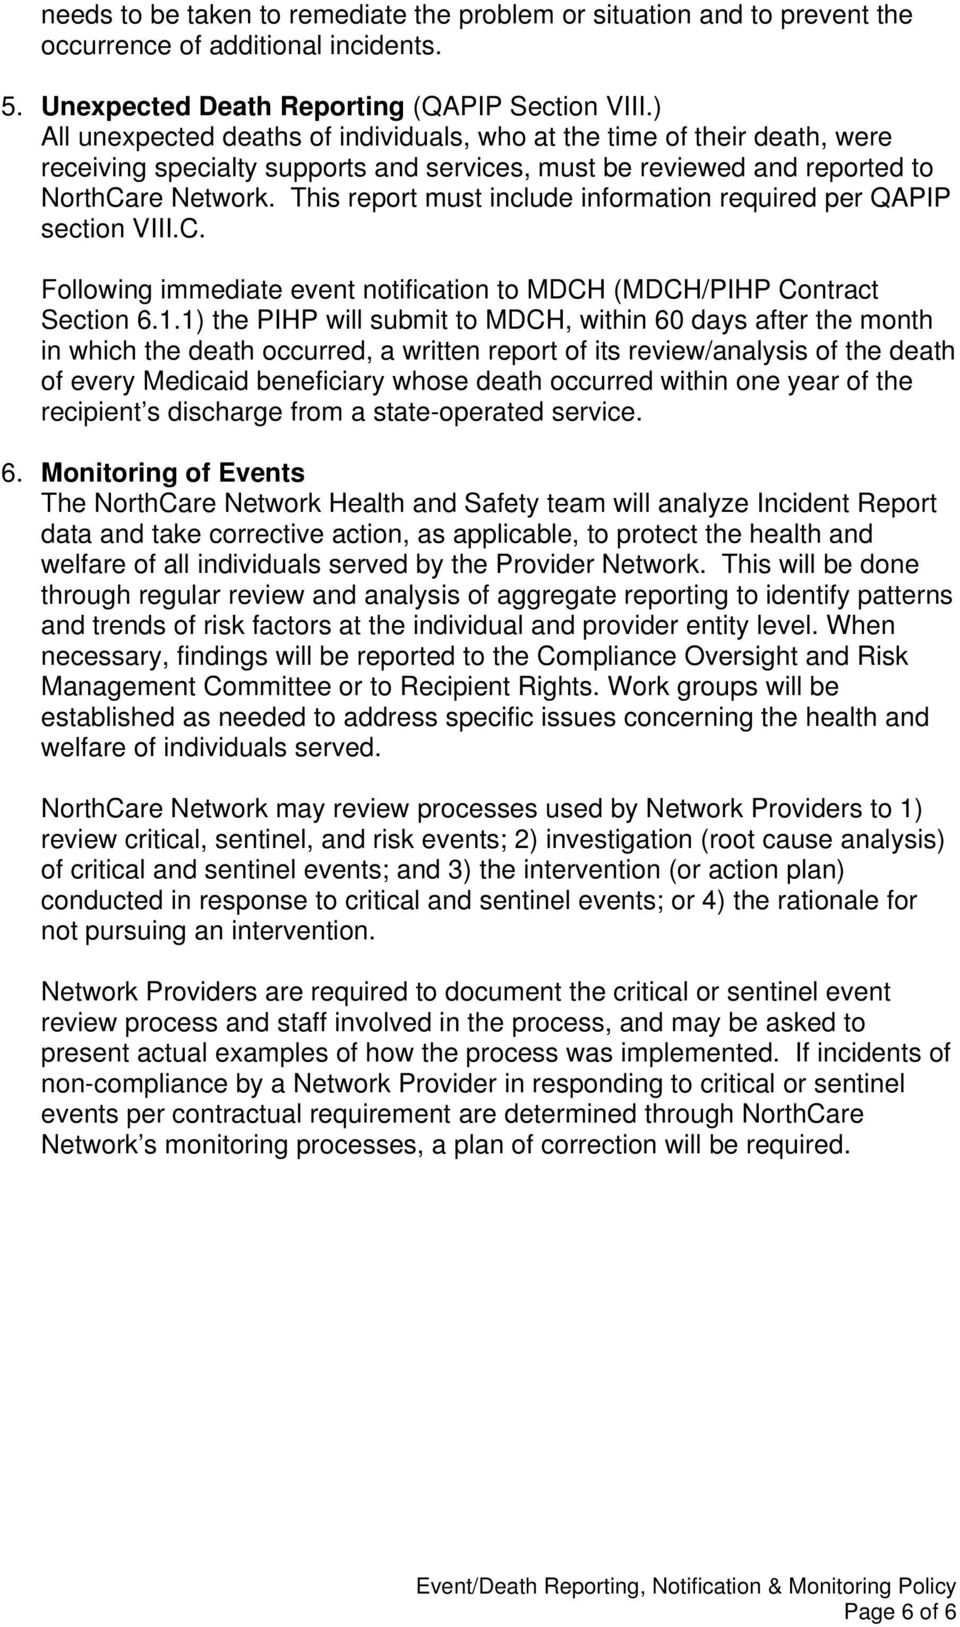 This report must include information required per QAPIP section VIII.C. Following immediate event notification to MDCH (MDCH/PIHP Contract Section 6.1.